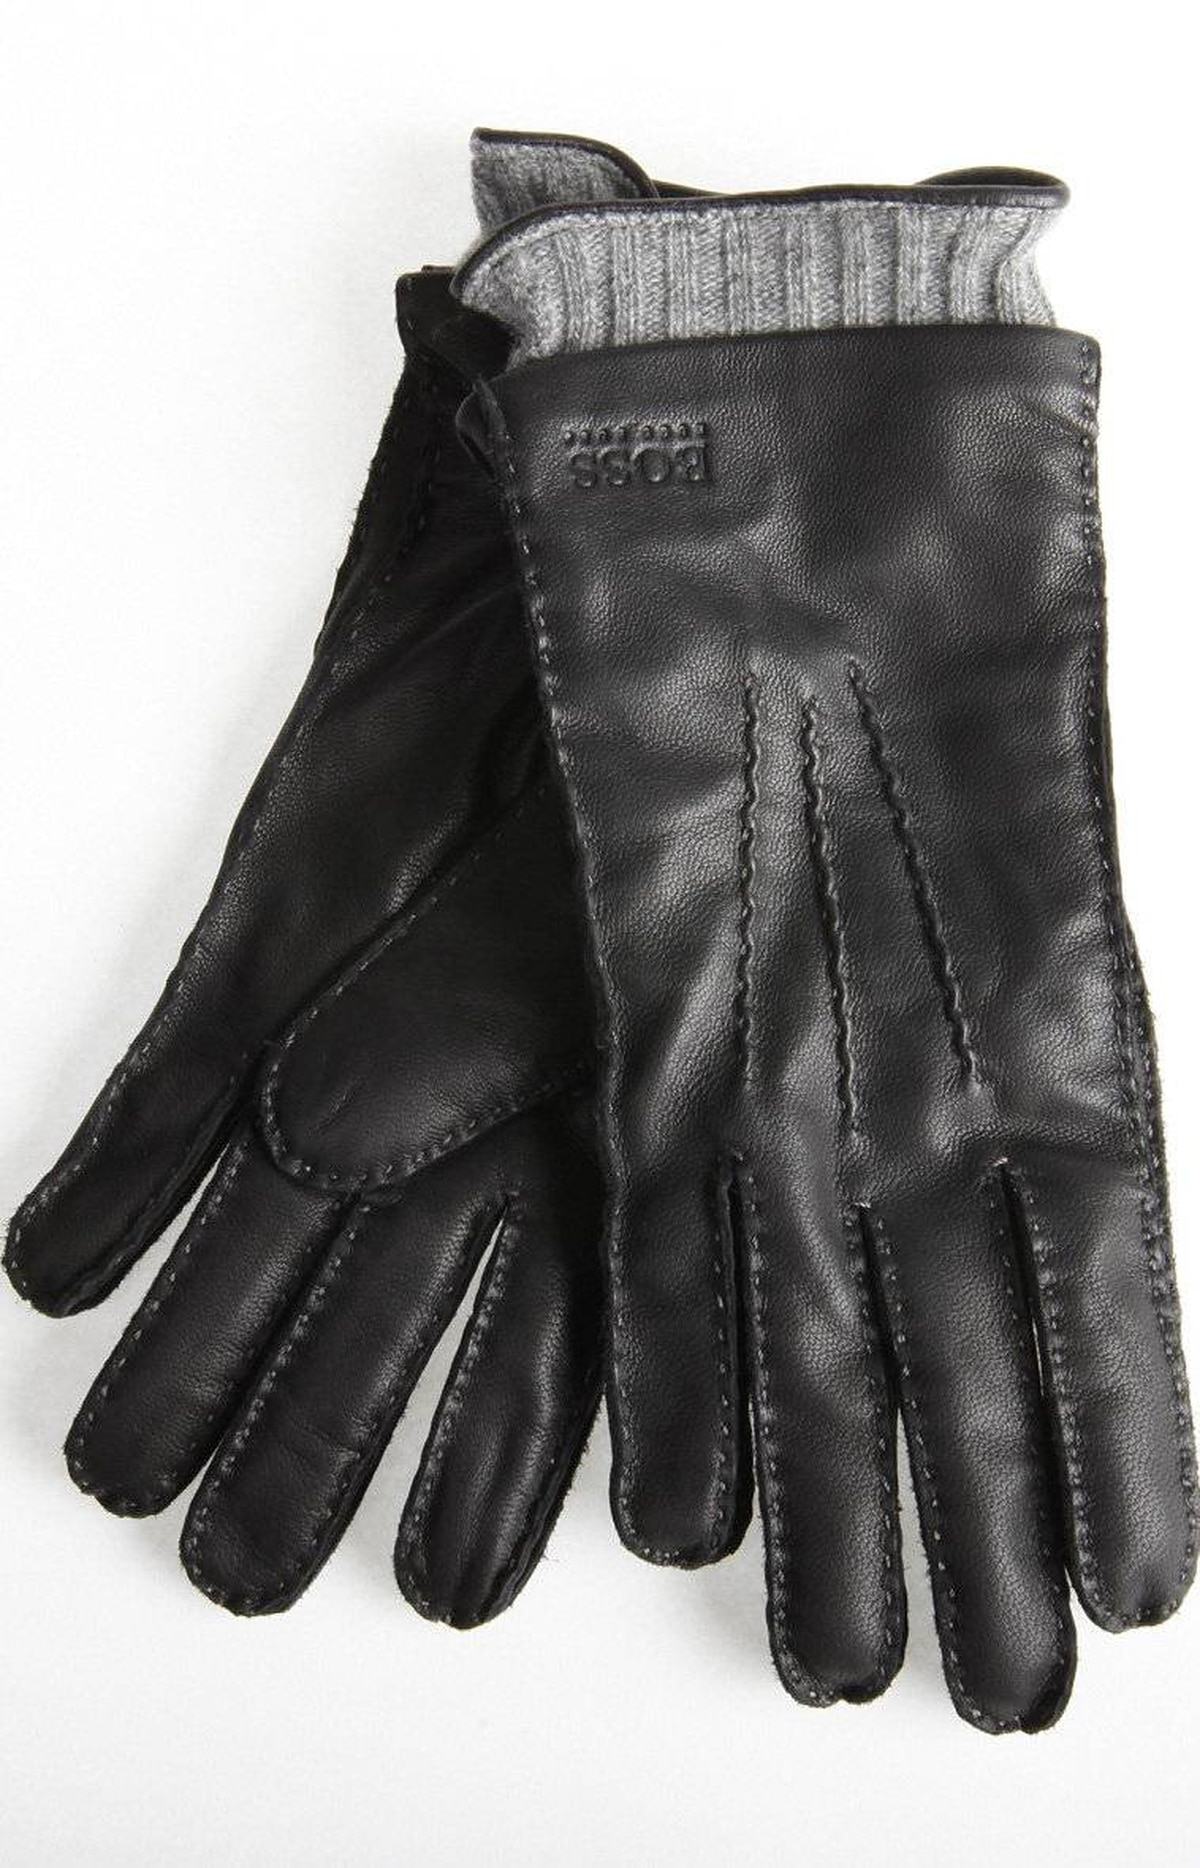 Black Hugo Boss gloves, $135 at Harry Rosen (www.harryrosen.com).